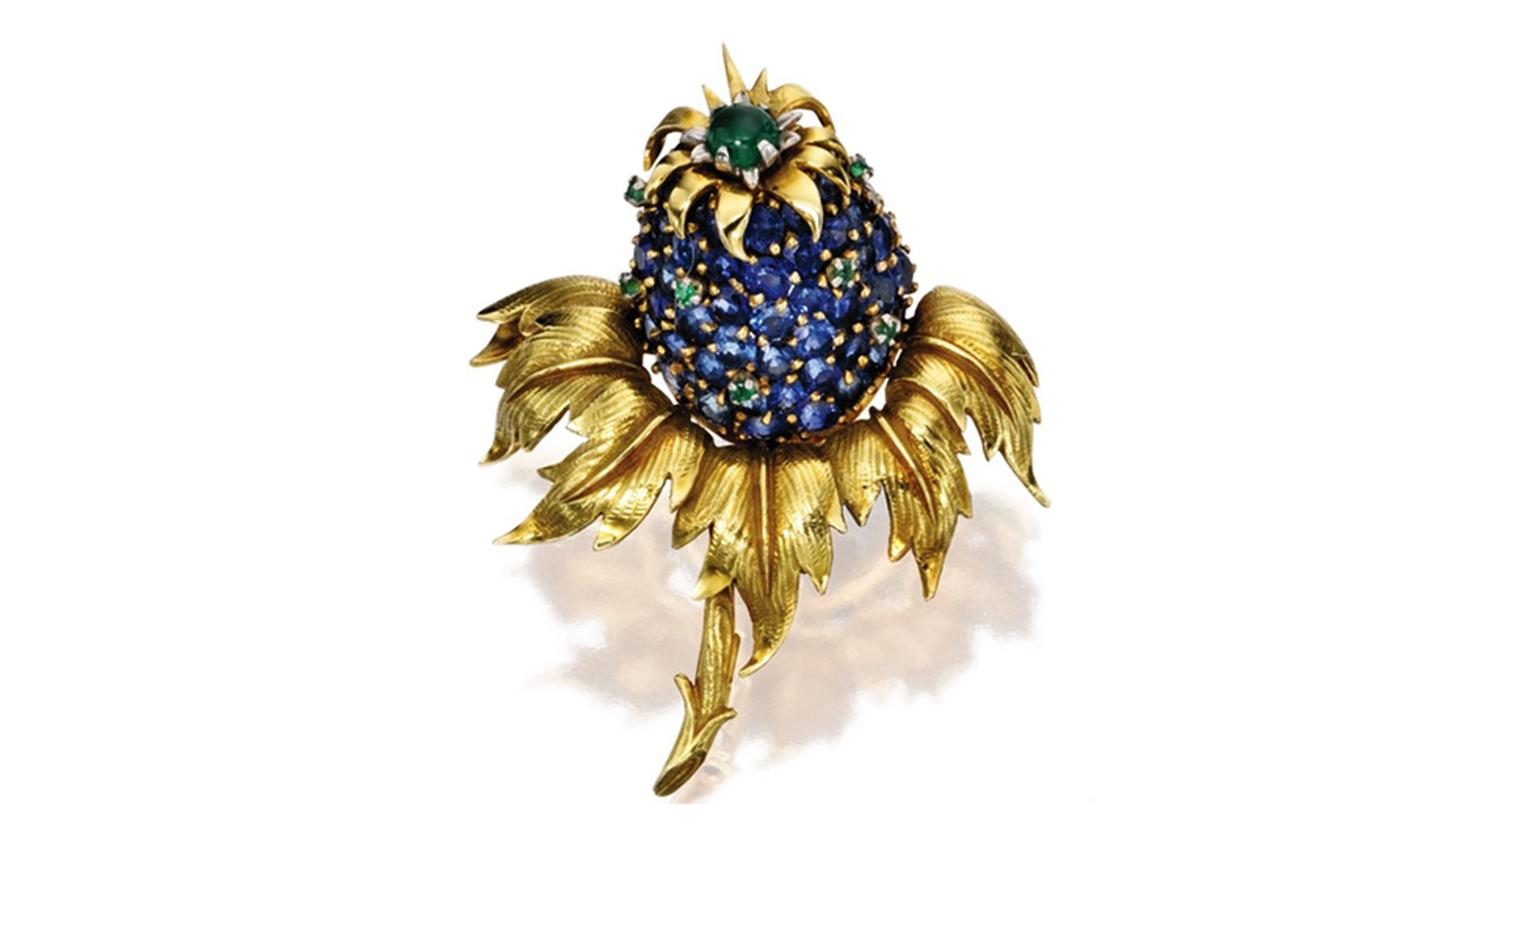 Lot 462 18 Karat Gold Sapphire and Emerald Pinapple Brooch. Est. $5/7,000. SOLD FOR $6,250